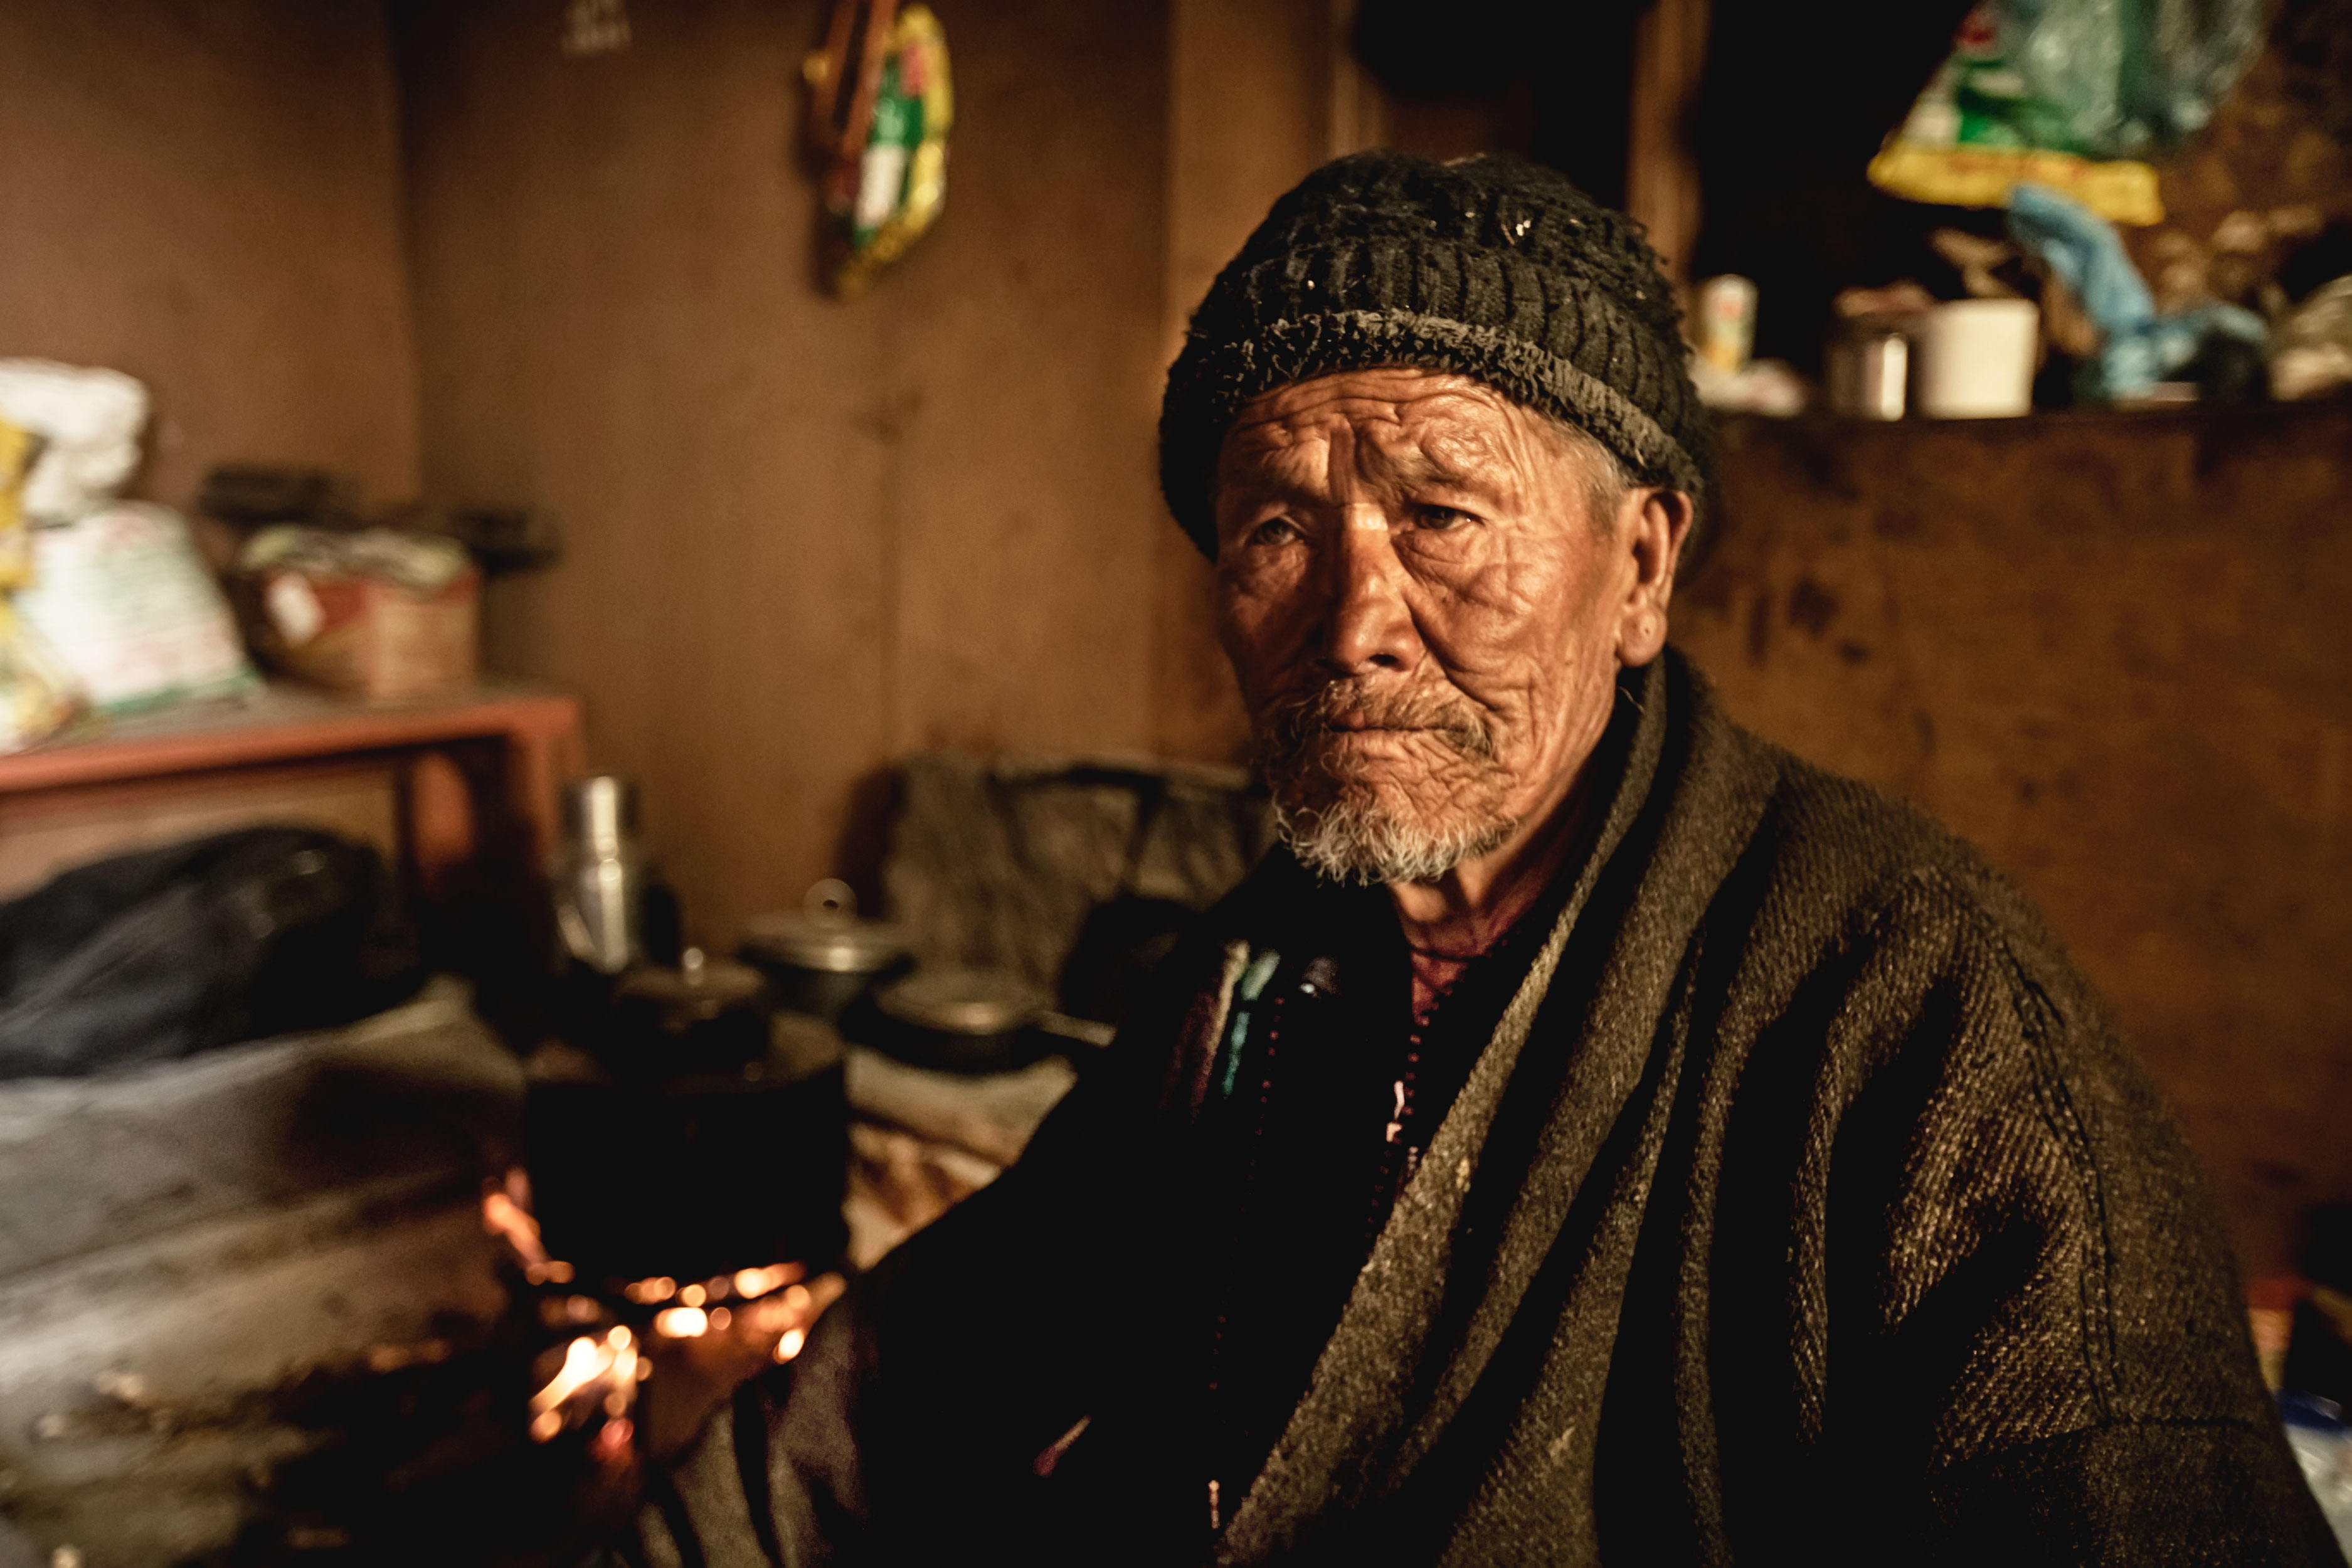 Who Are the Sherpa People of Nepal?